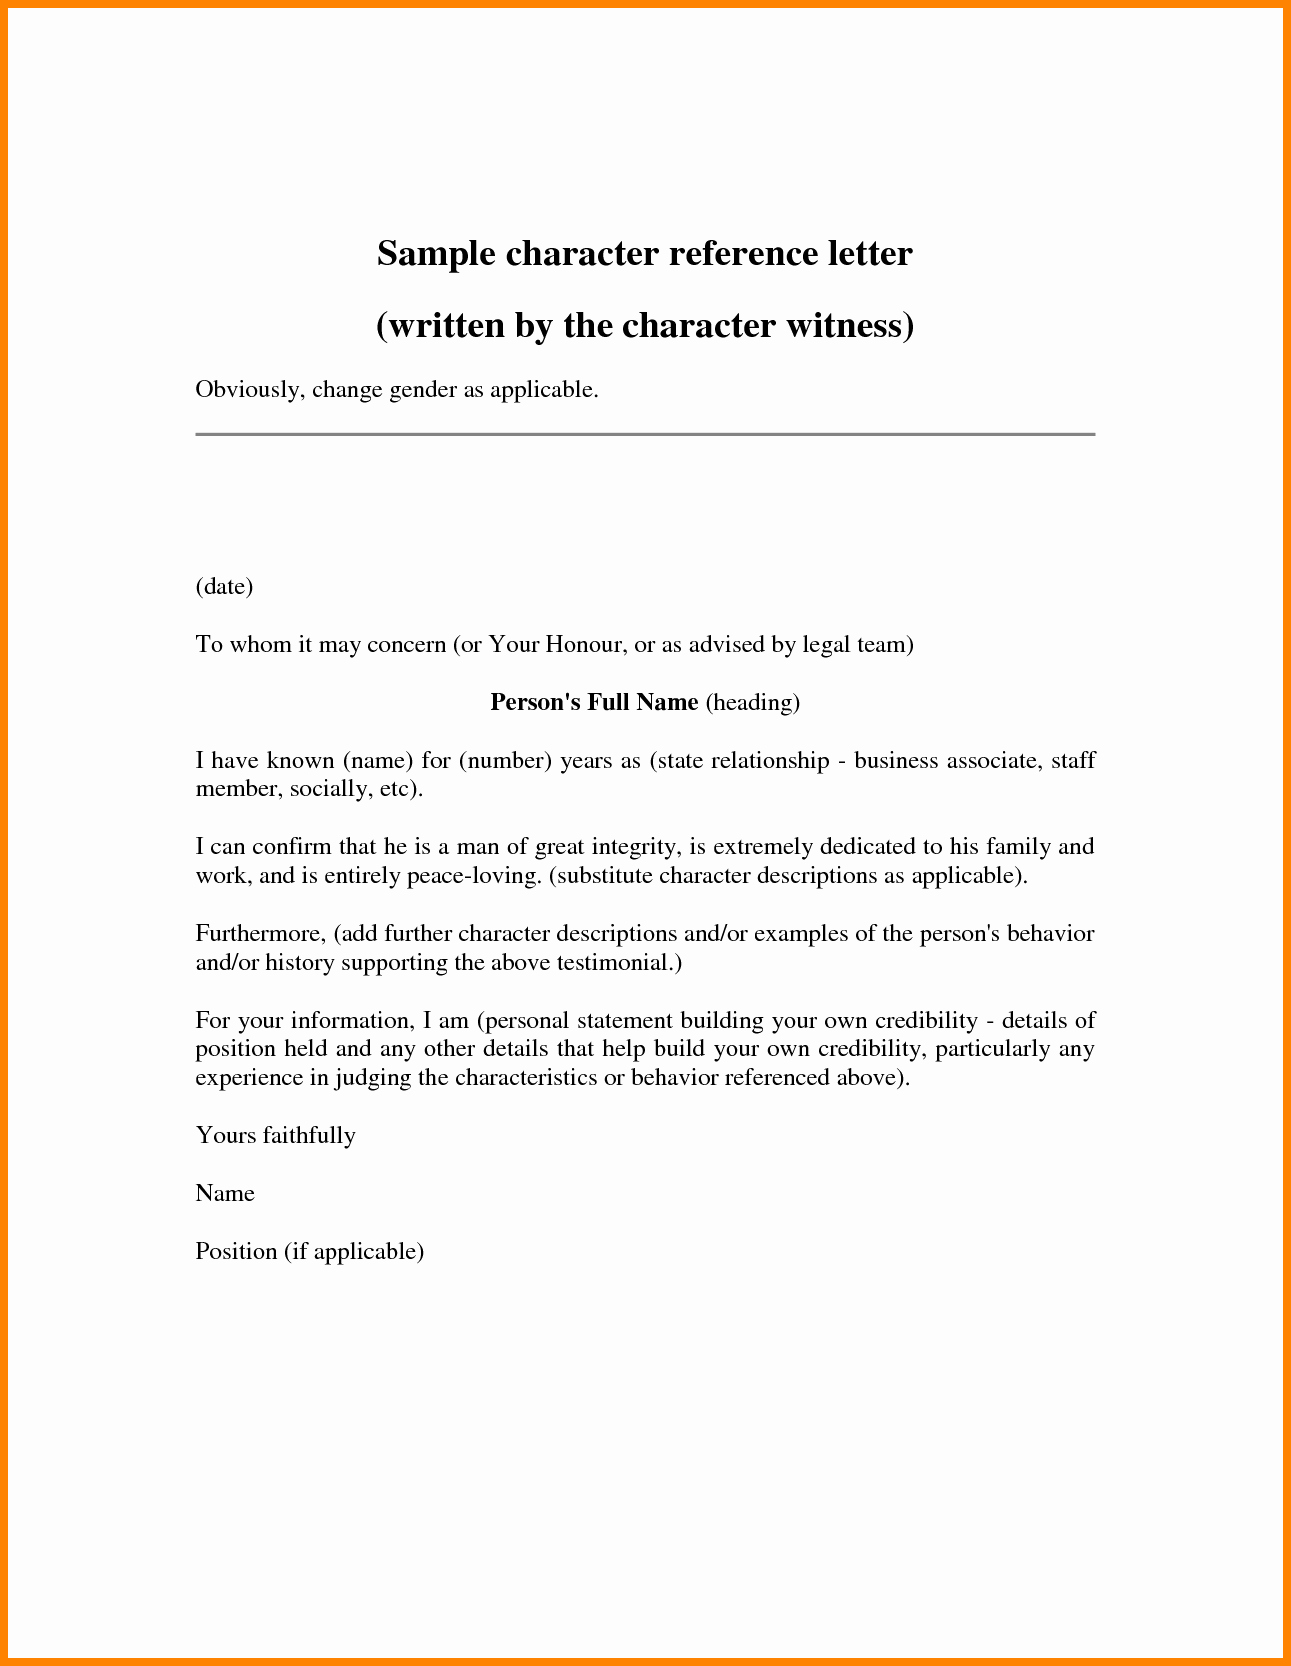 Free Character Reference Letter Template New Printable Santa List Templates Printable Sample Letter to